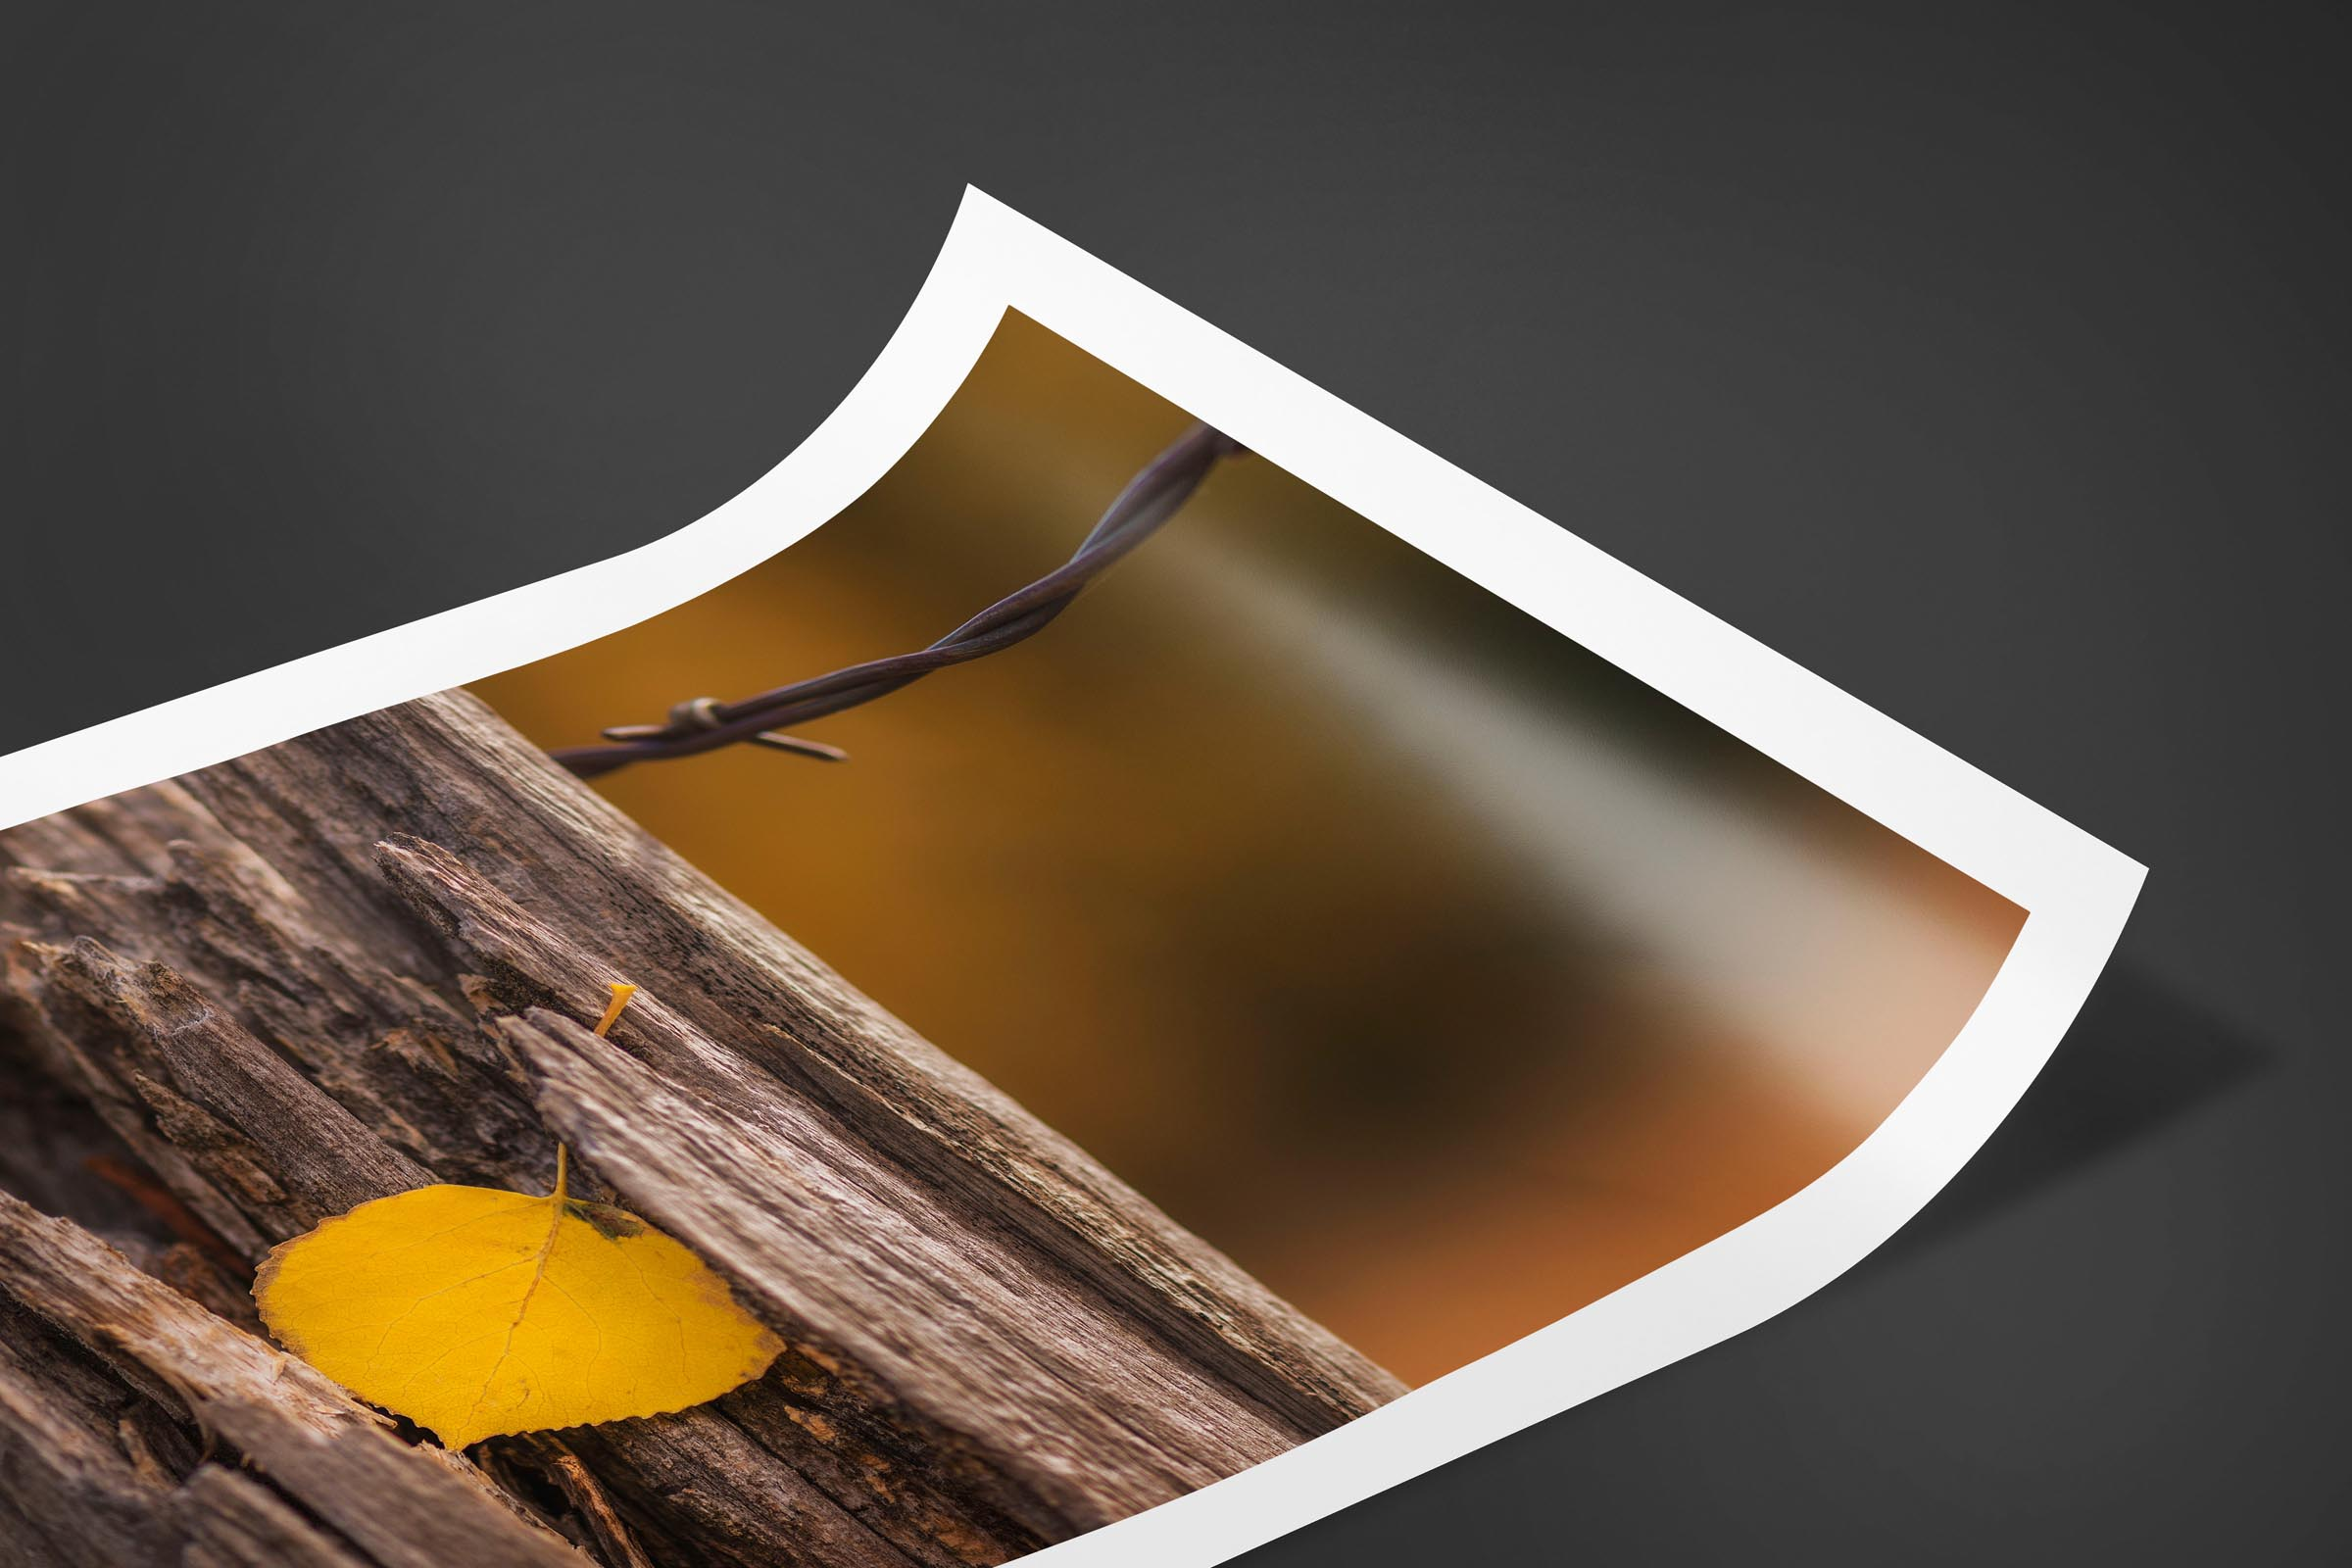 Fine art limited edition print of Resting Leaf in San Juan Mountains, Colorado by Brent Goldman Photography